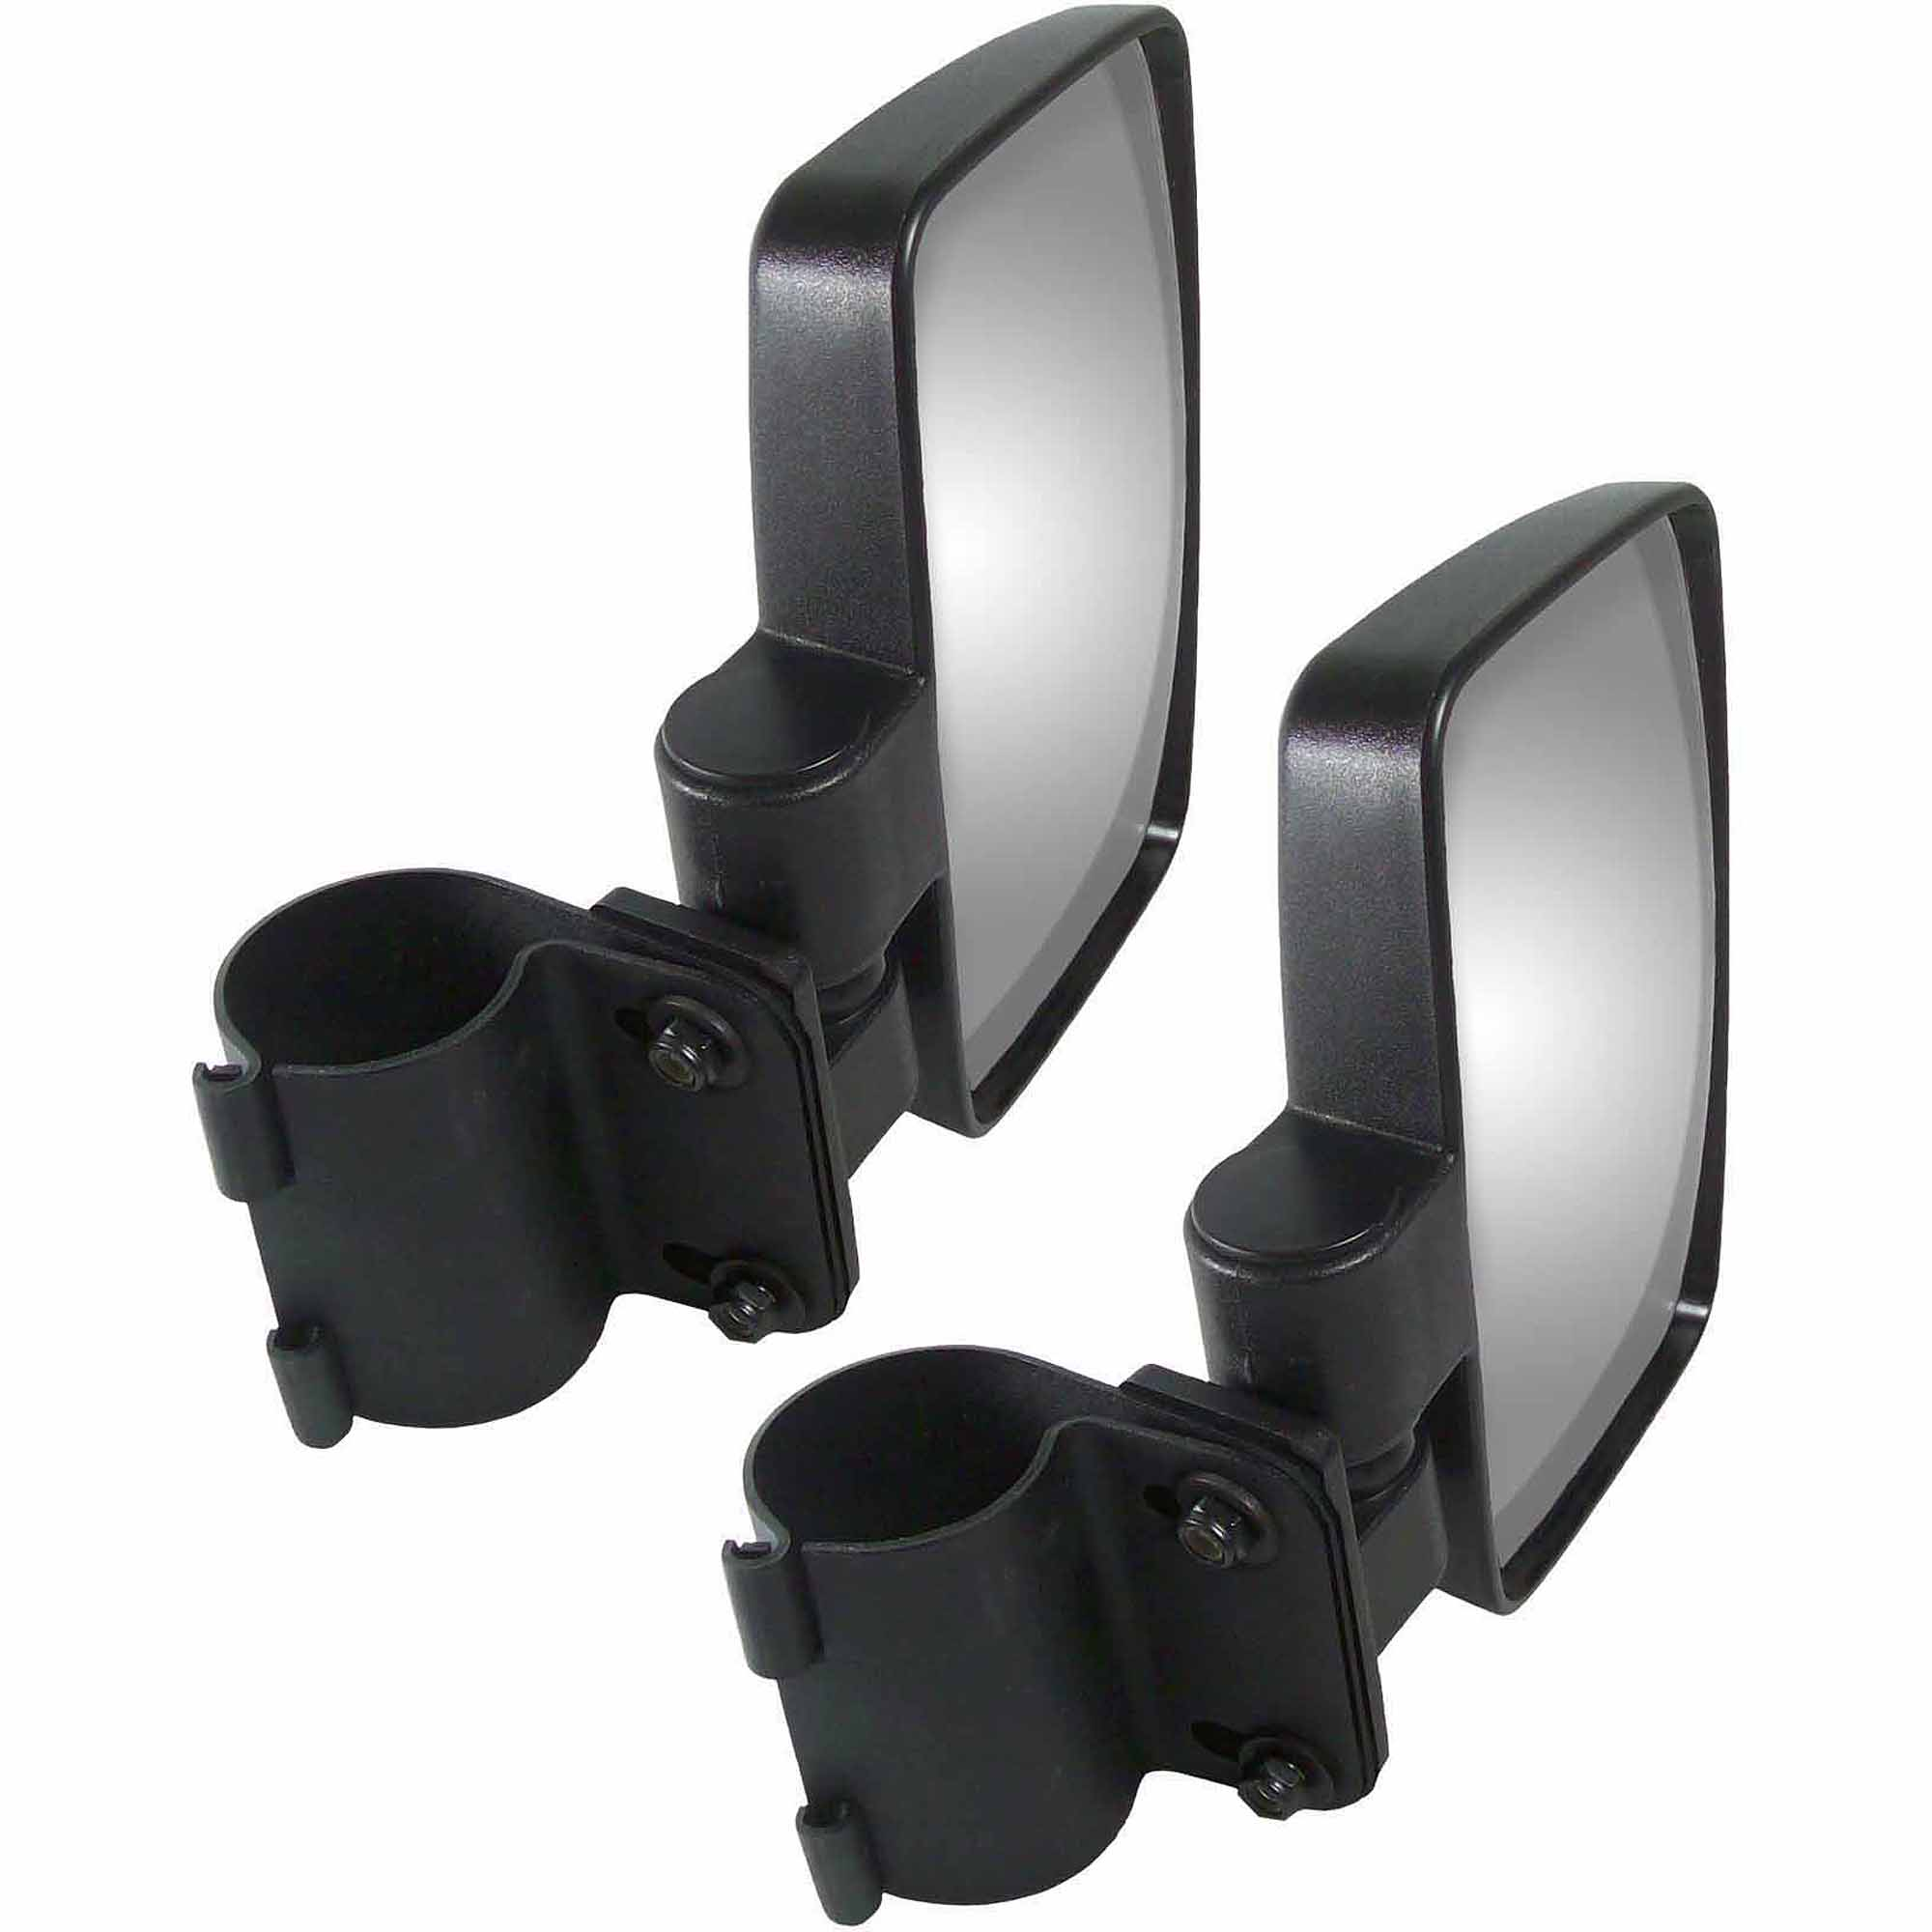 CIPA Side View Mirror for Utility Vehicles and Side by Sides